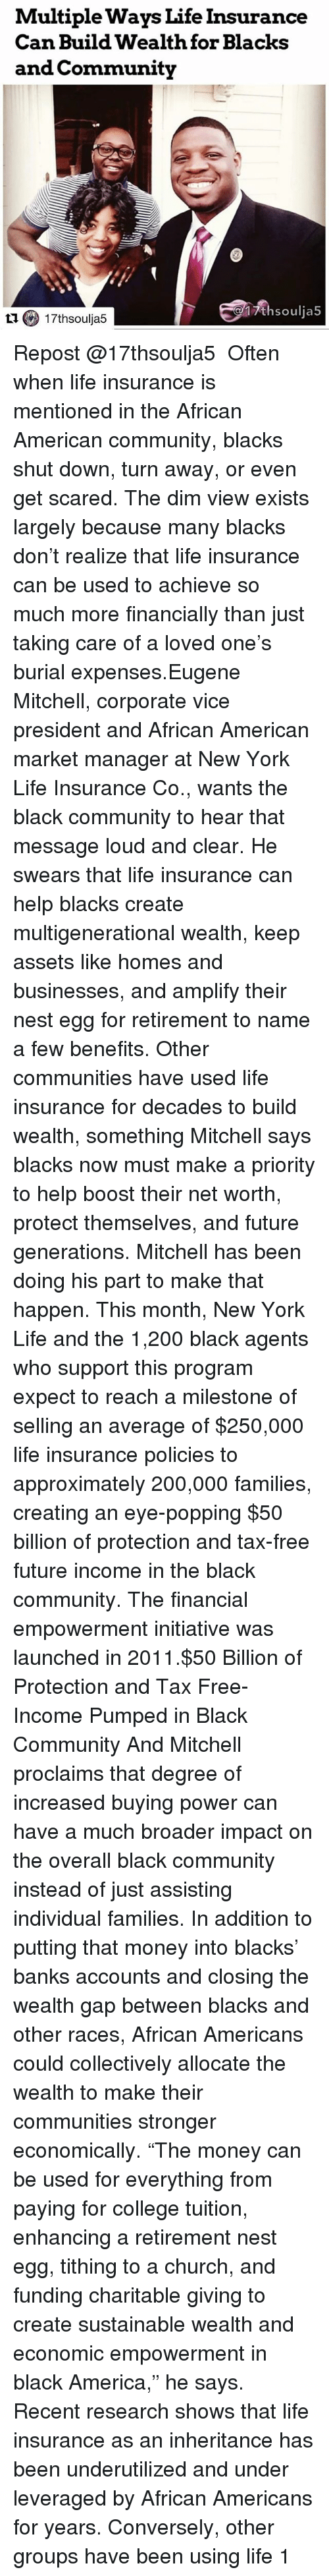 Multiple Ways Life Insurance Can Build Wealth for Blacks ...